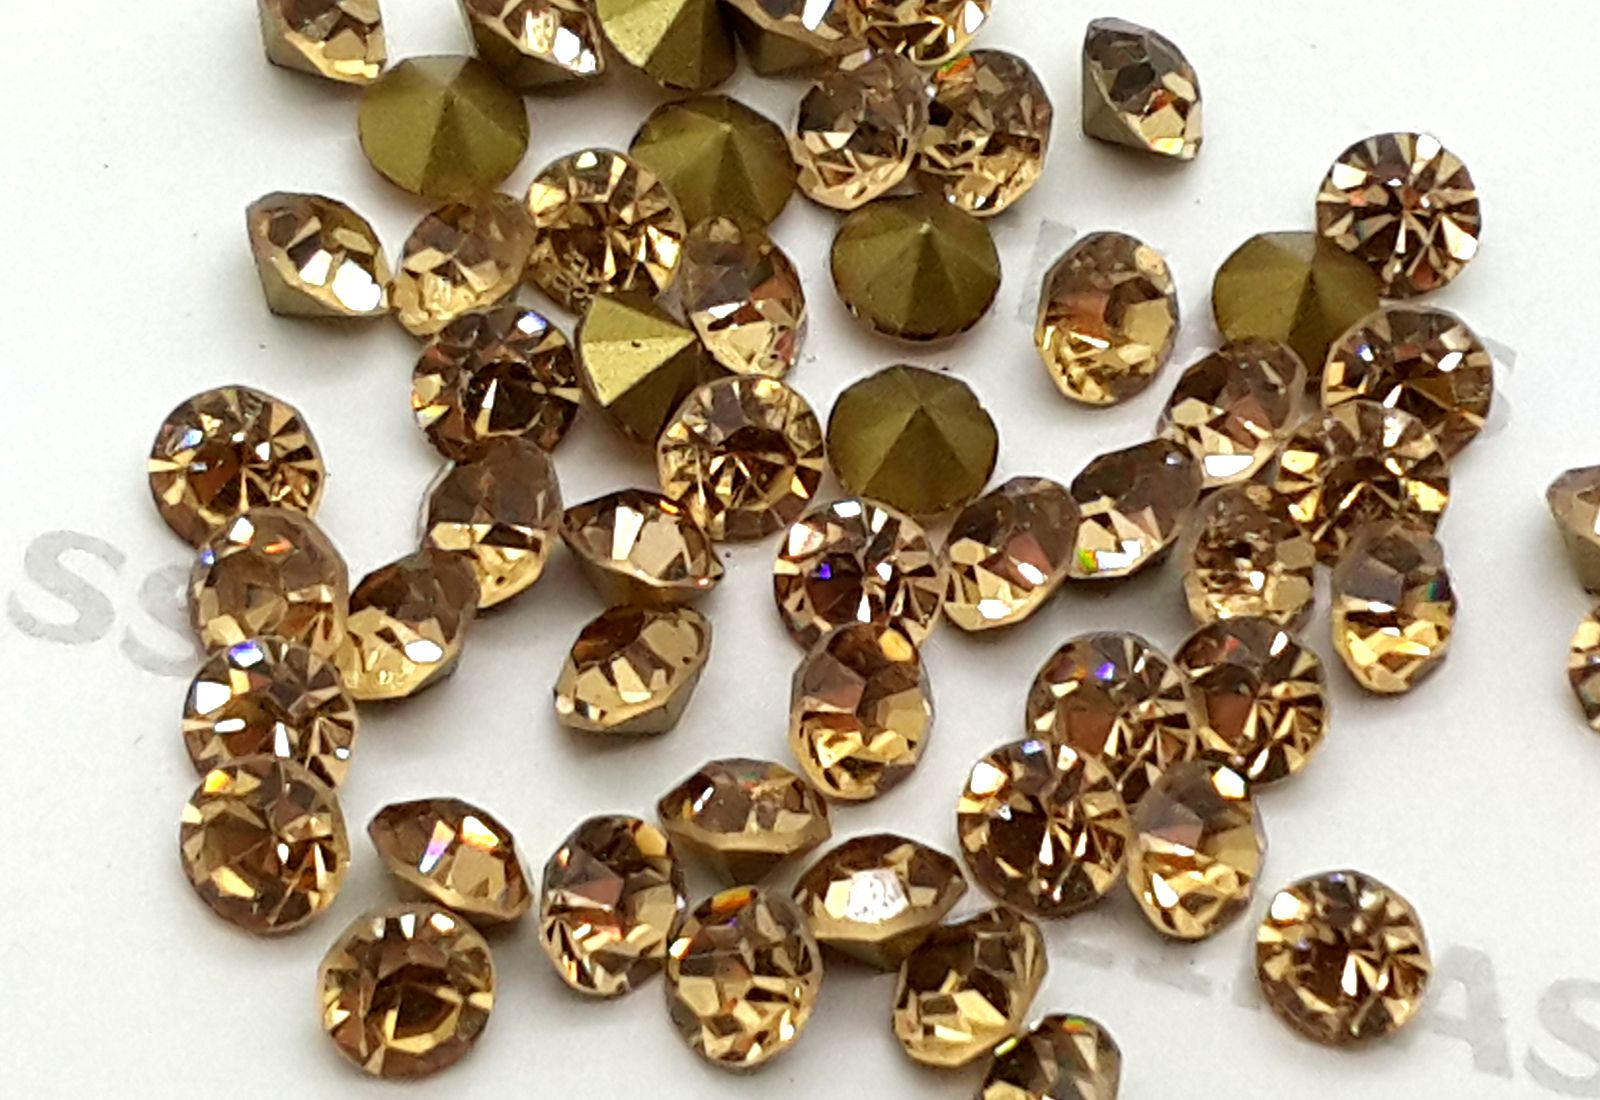 Light Gold Foiled Chatons Eimass Point Back Crystals